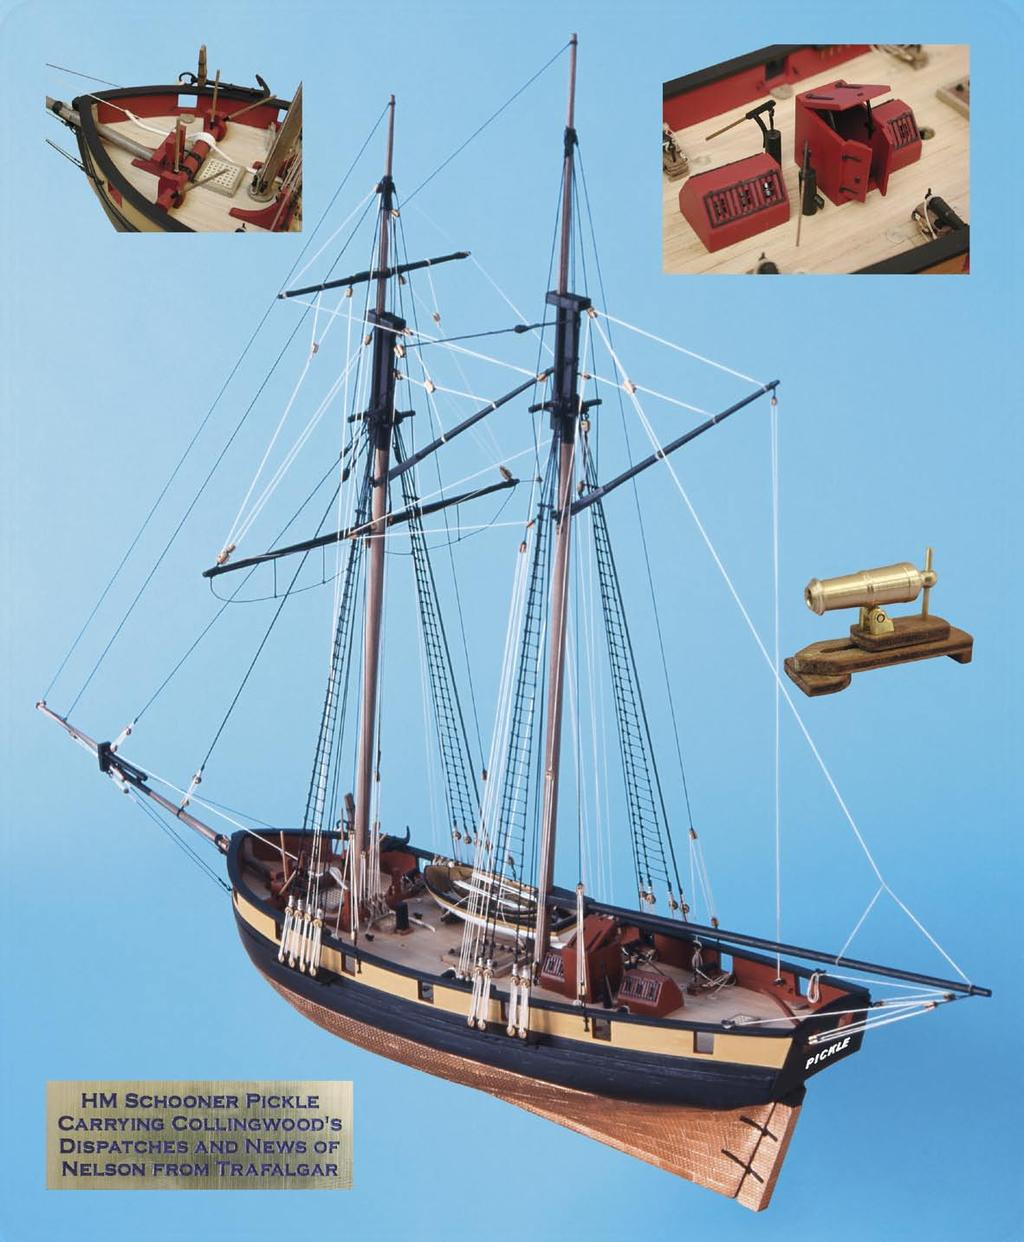 HERITAGE SERIES ~ HM SCHOONER PICKLE Kit includes: Double plank on bulkhead construction in lime and walnut; all decking in high quality Tanganyika strip; 6 x 12pdr turned brass carronades, fully